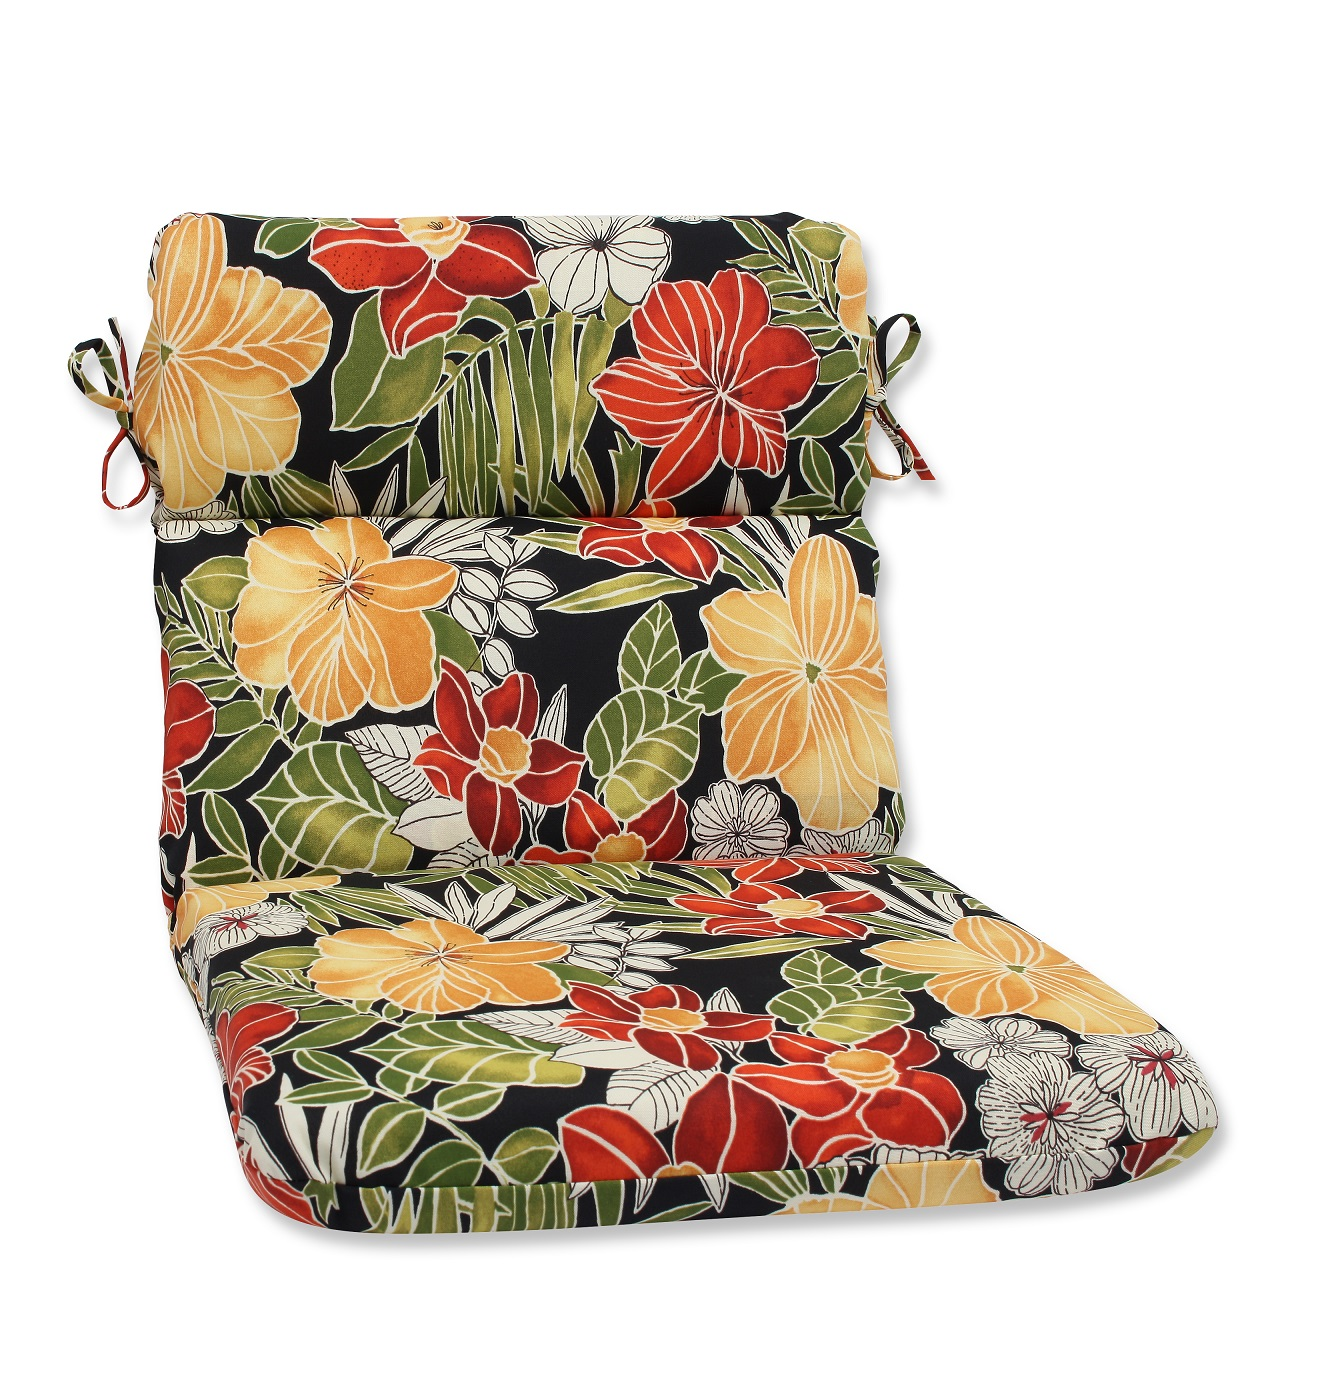 40 5 clemens noir red and black floral outdoor patio rounded chair cushion